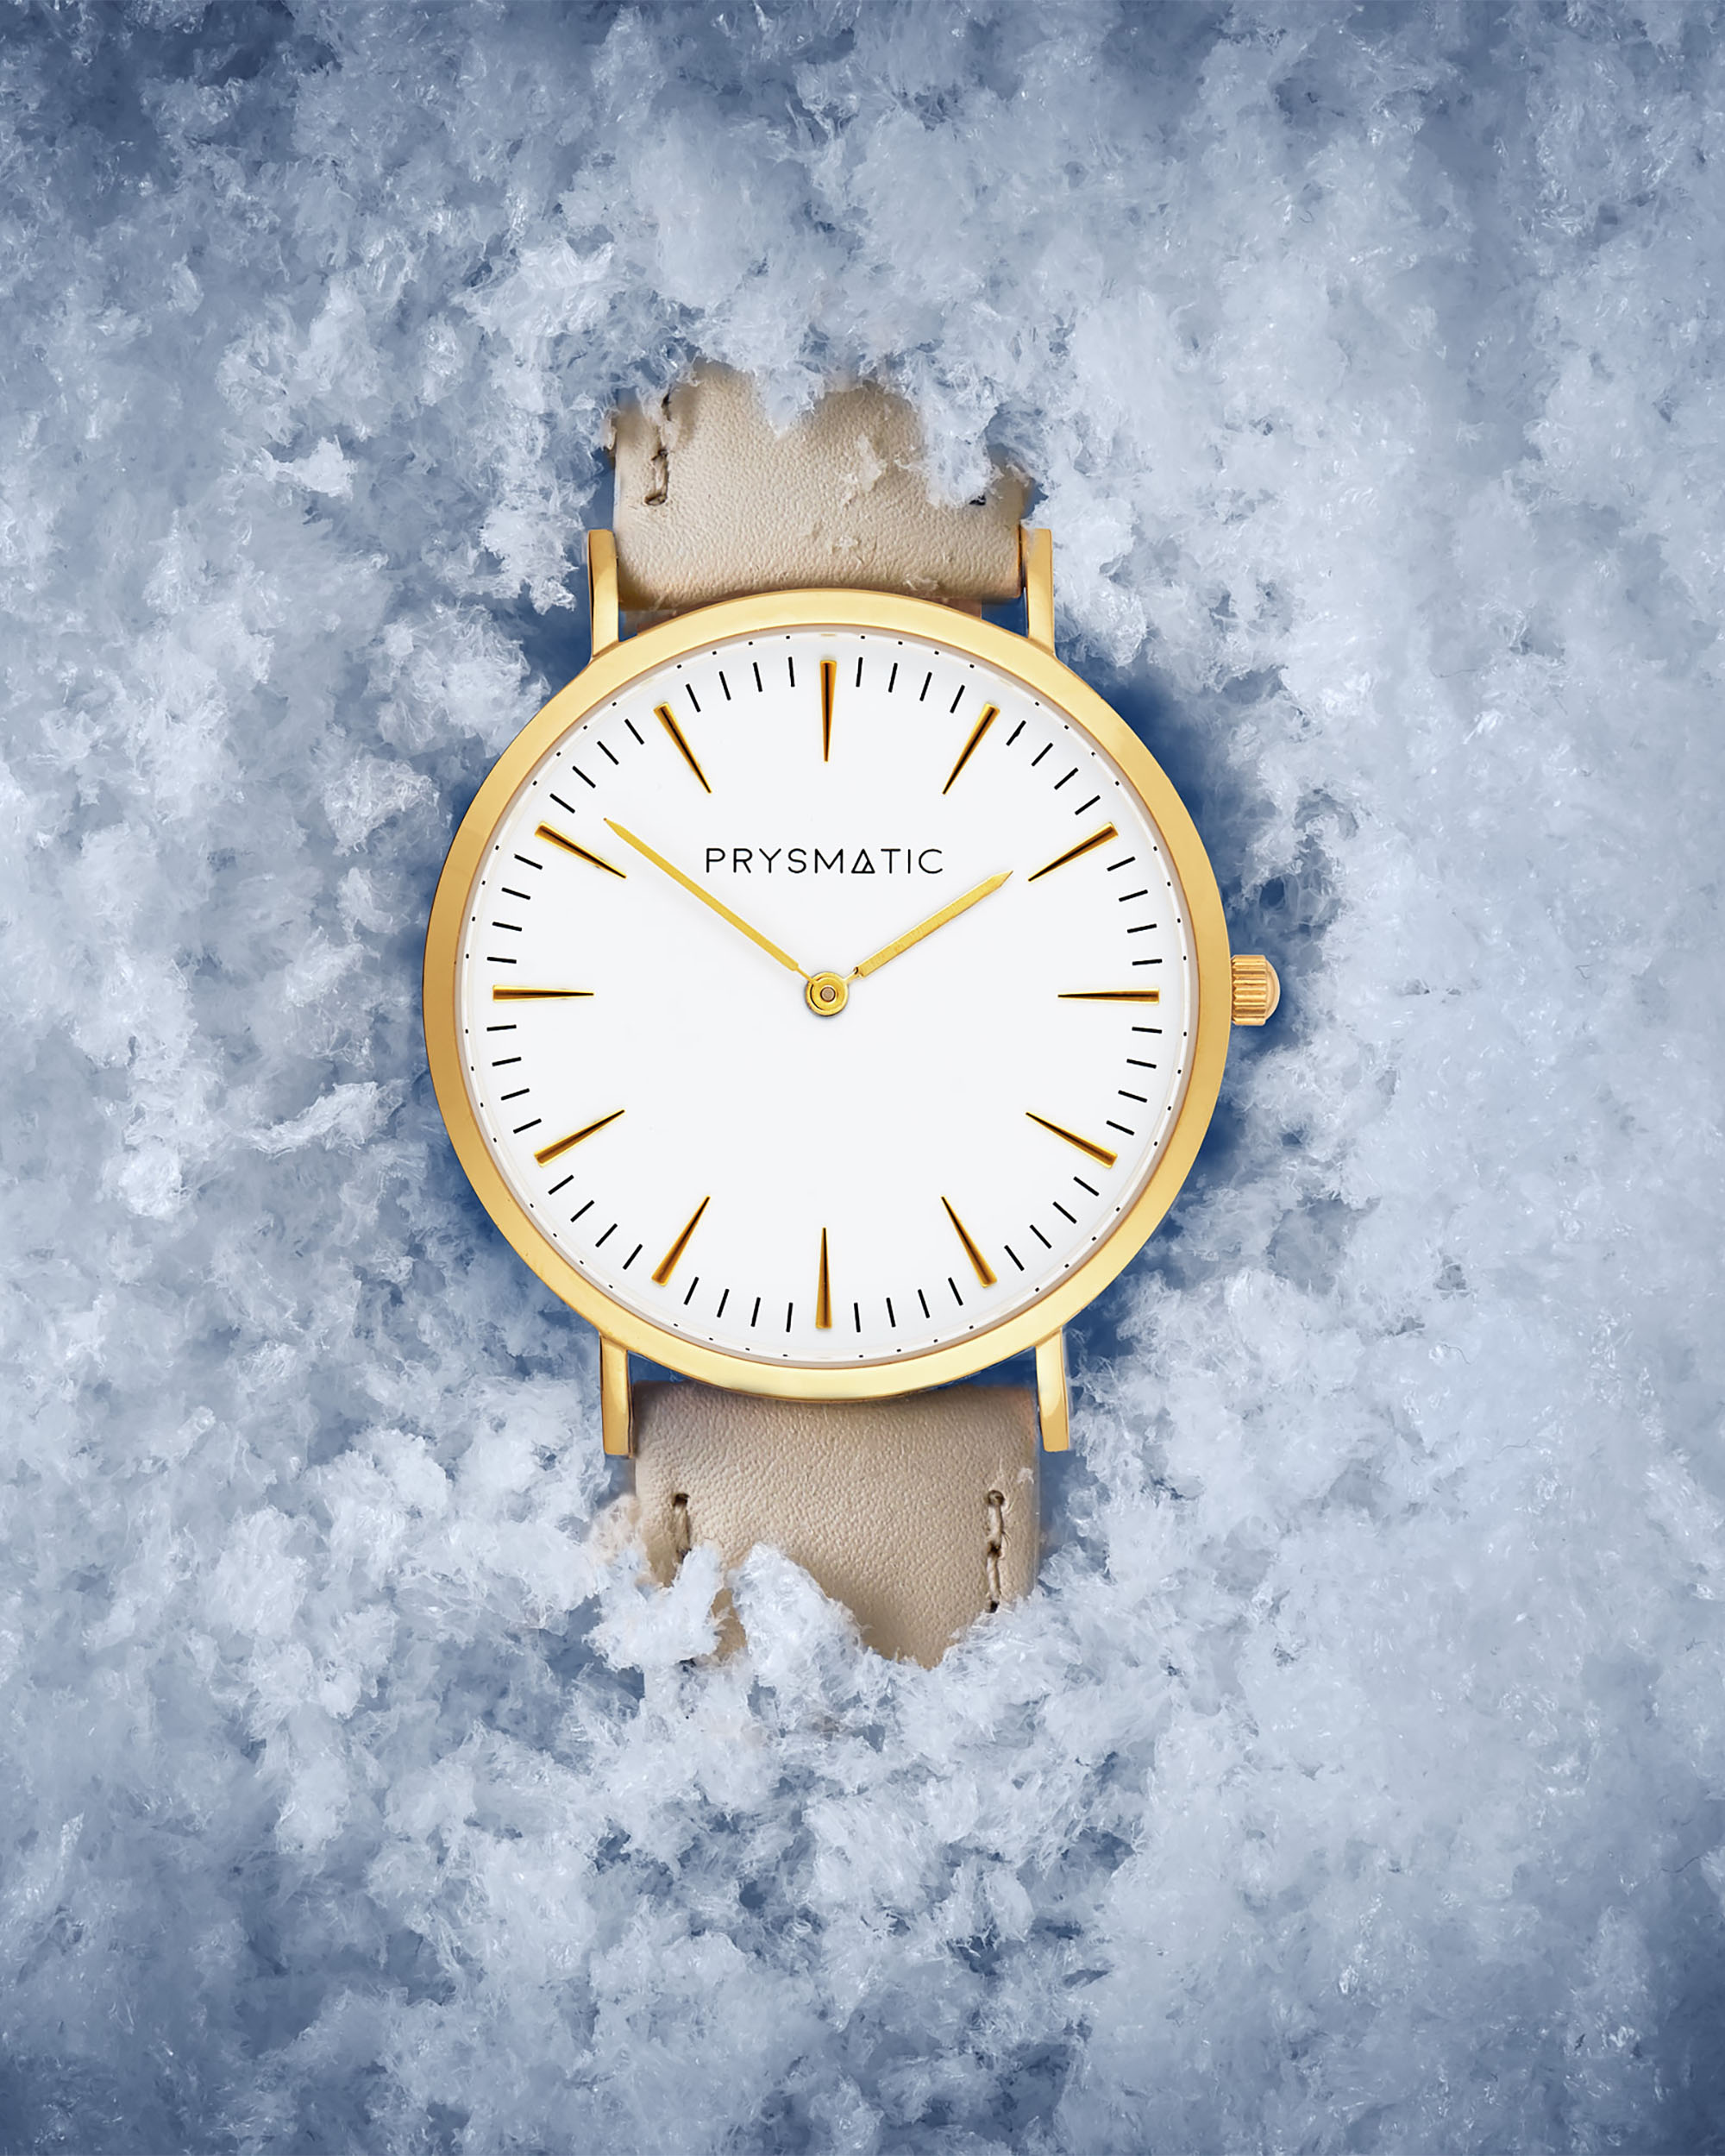 Commercial Advertising Watch Photography by Ian Knaggs - Prysmatic Watch in Snow